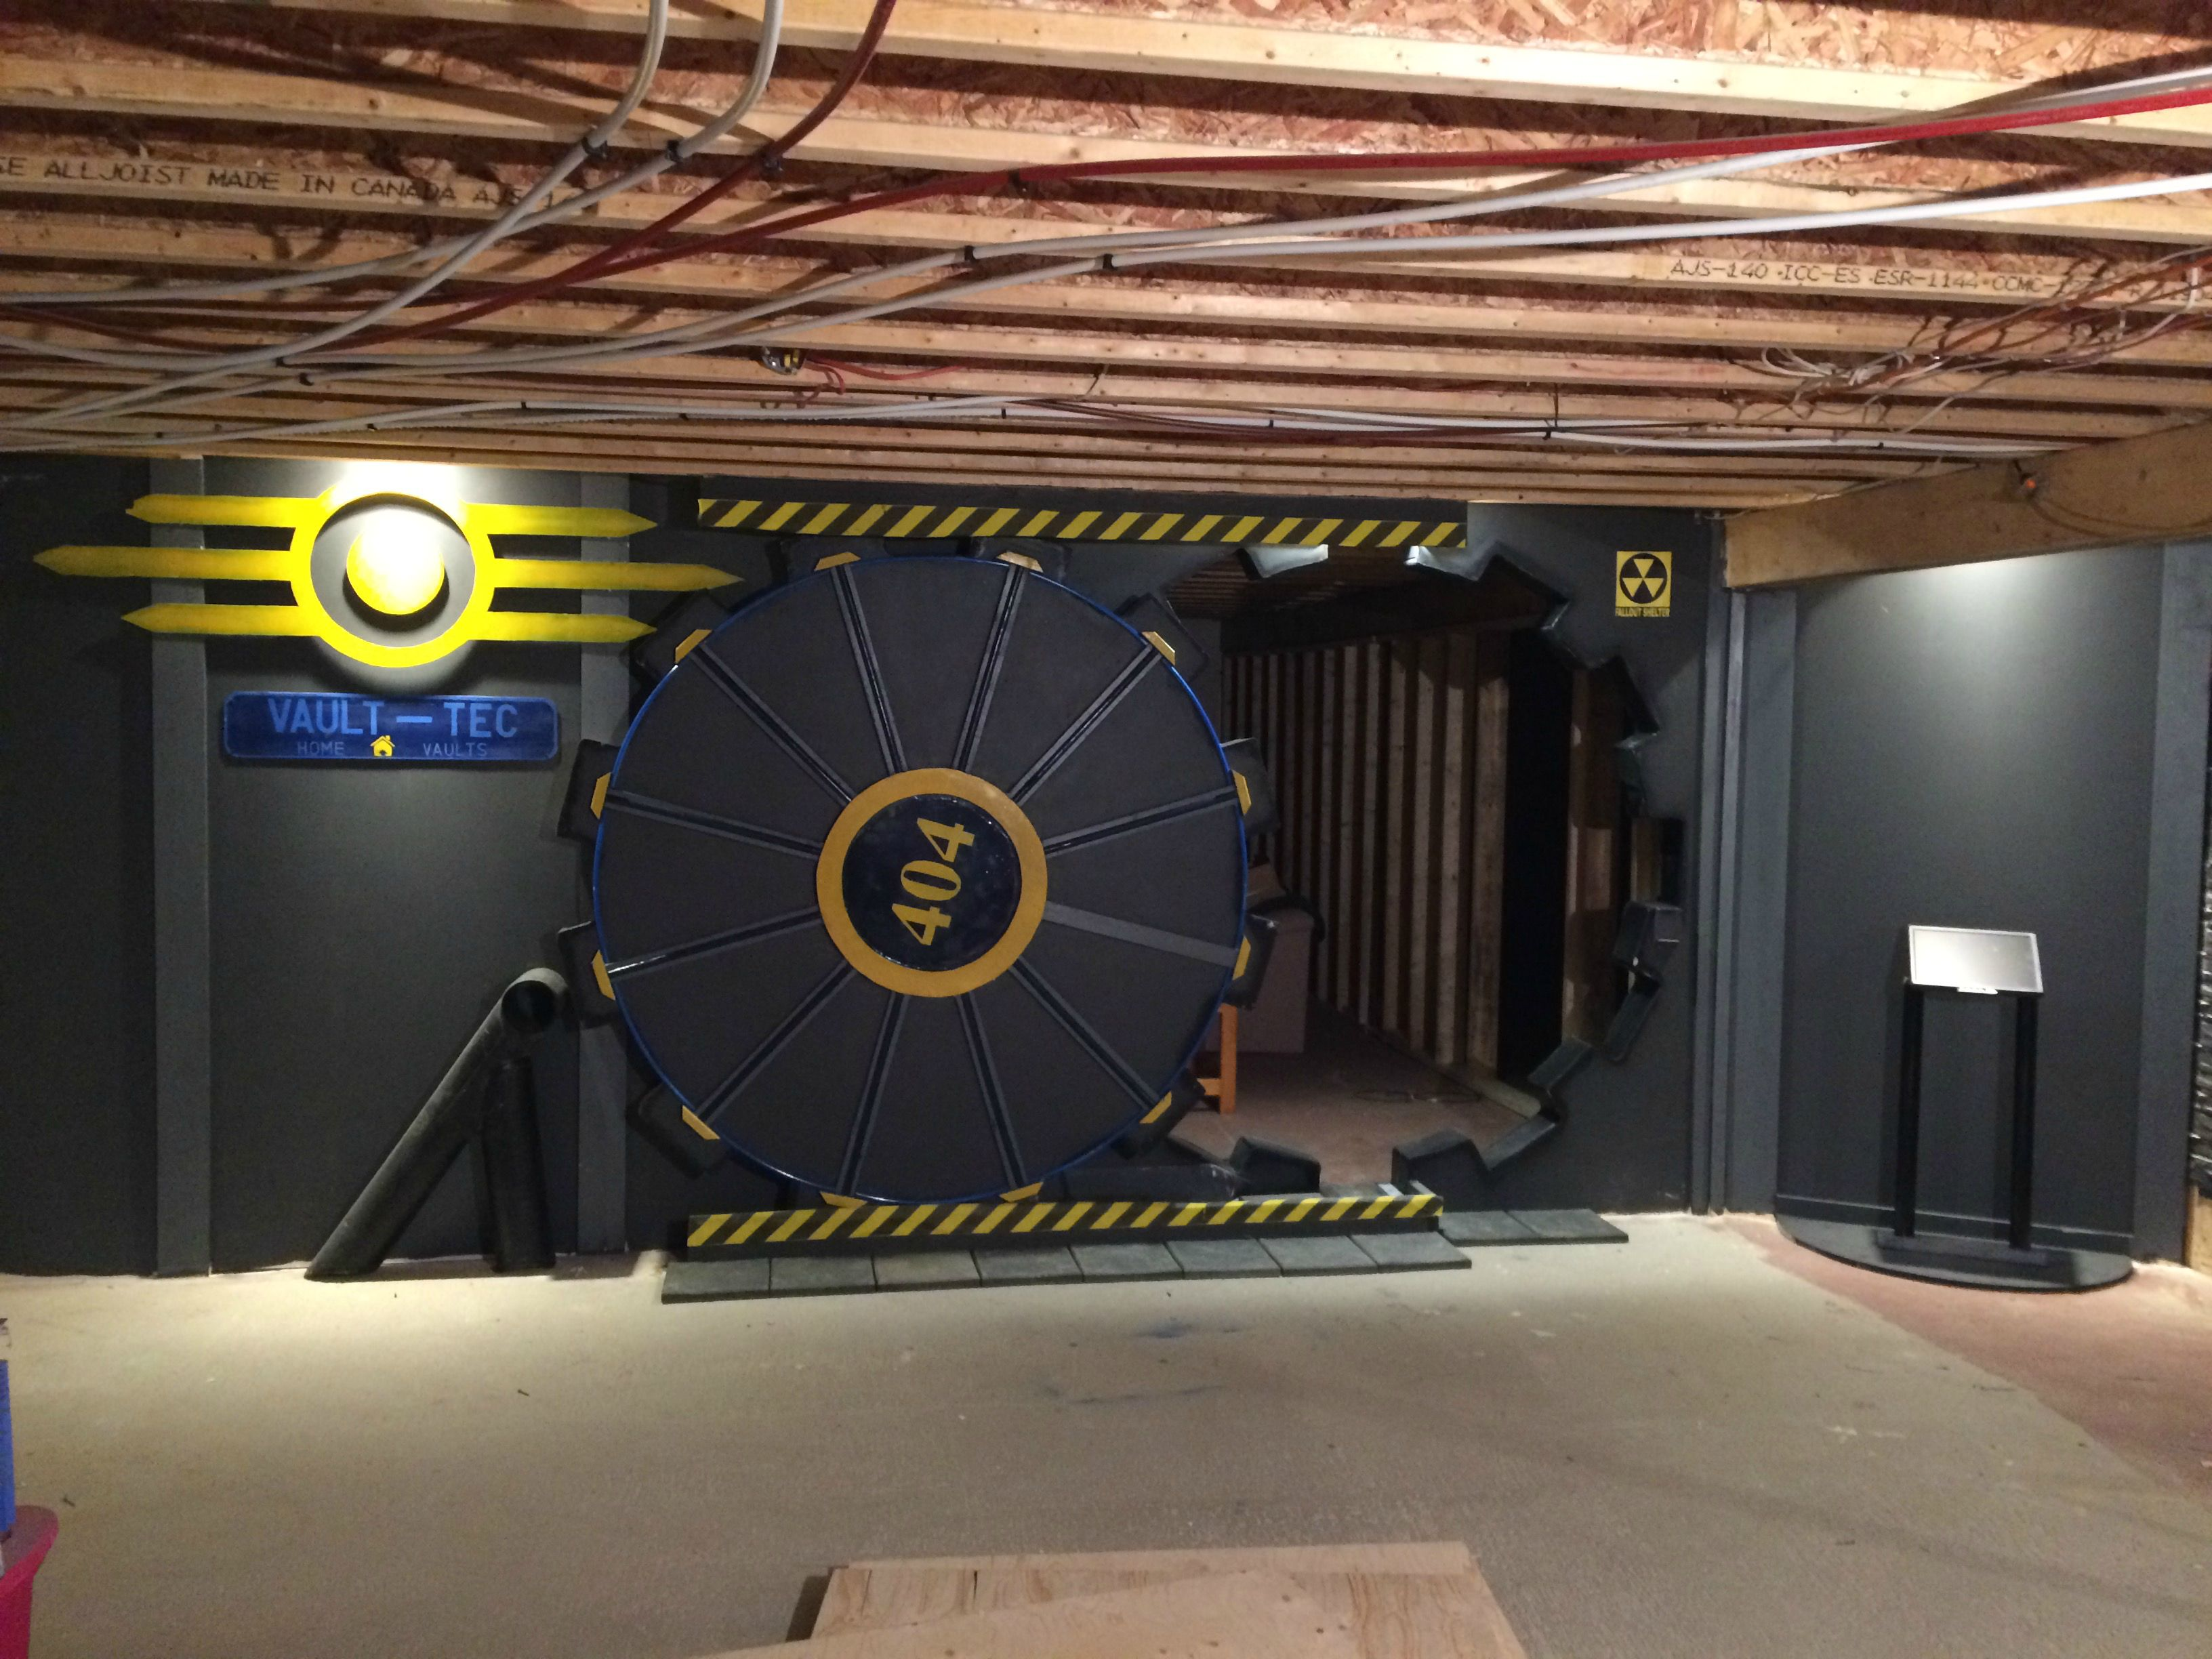 Man builds 39 fallout 39 vault tec door for his gaming room How to make your own house in fallout 3